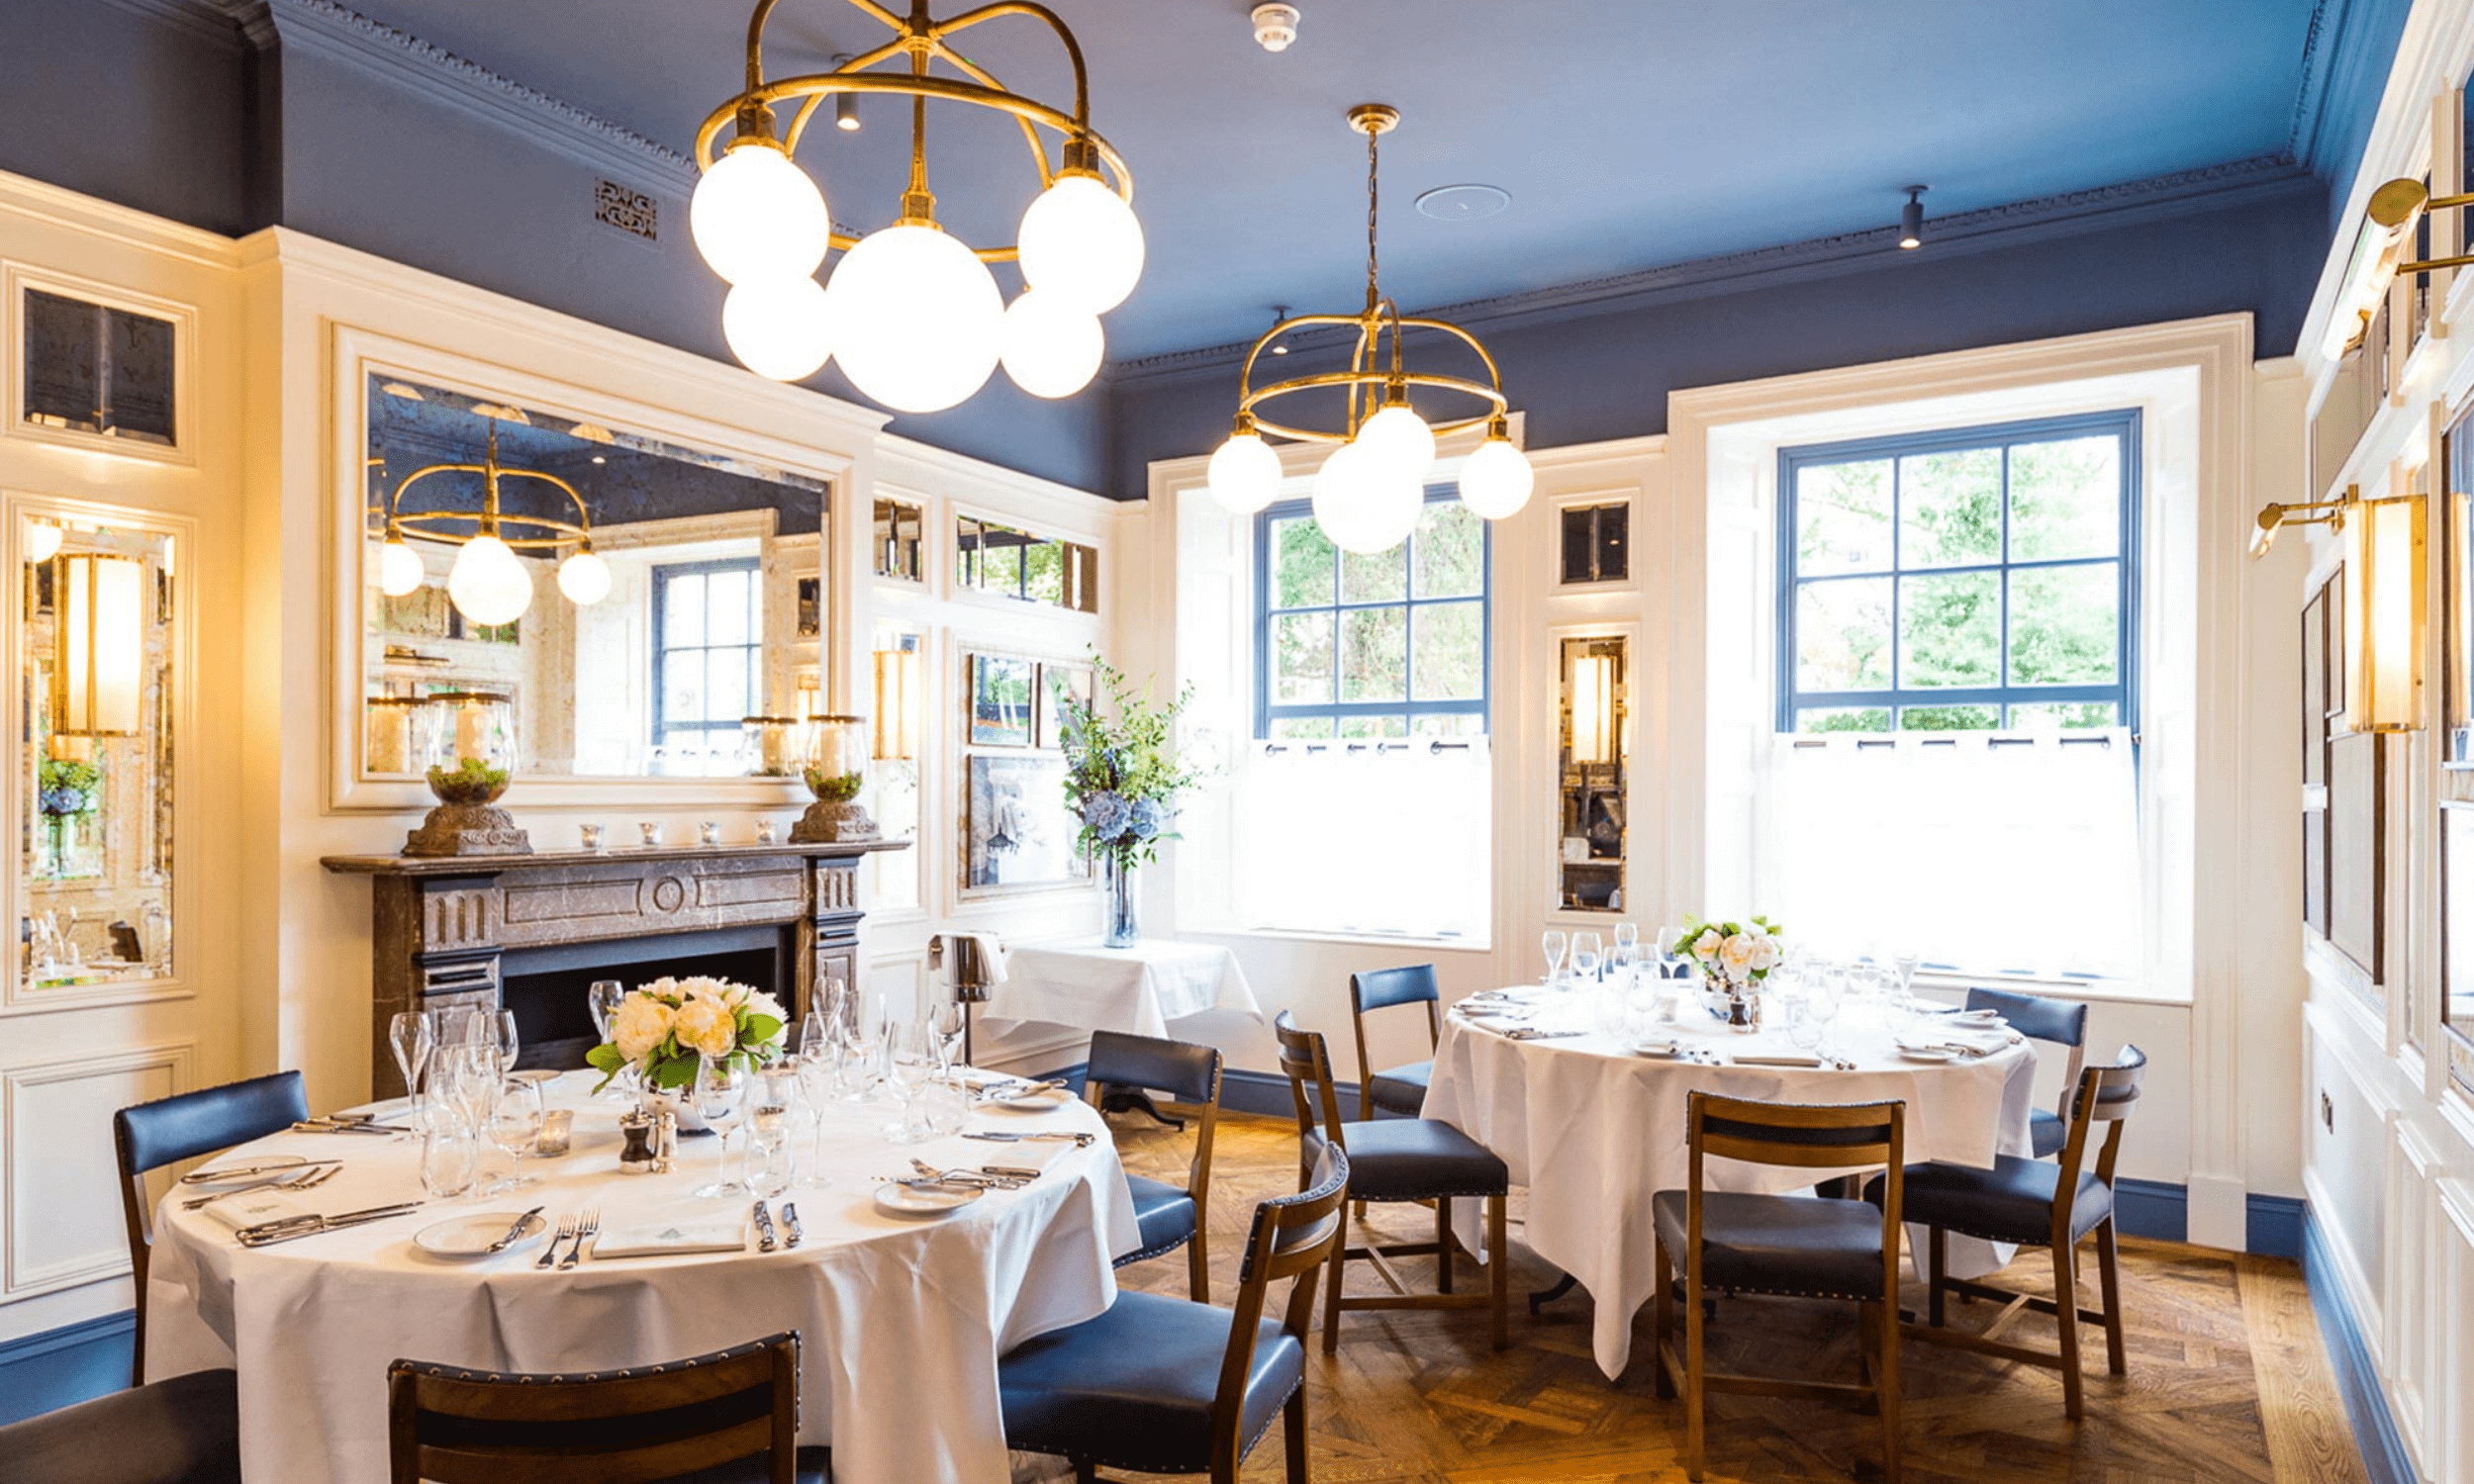 Group Dining in Bristol at the Ivy Clifton Brasserie - The Ivy Clifton Brasserie